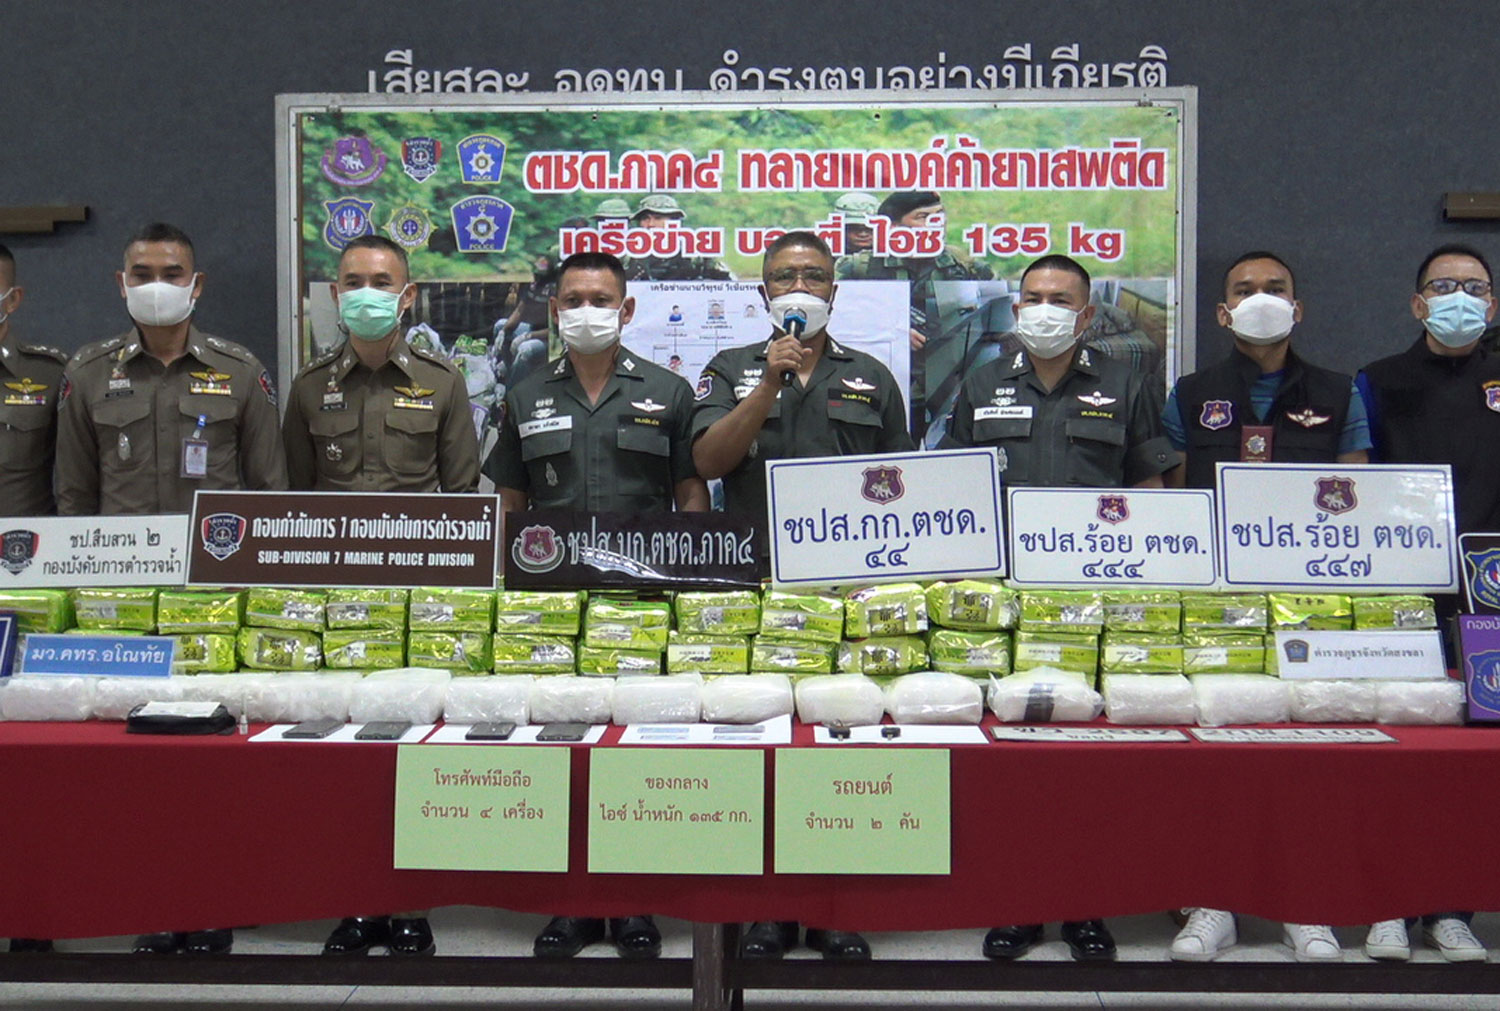 Packages of crystal methamphetamine totalling 135kg sized from a resort room, displayed during a media briefing in Songkhla on Thursday. (Photo: Assawin Pakkawan)